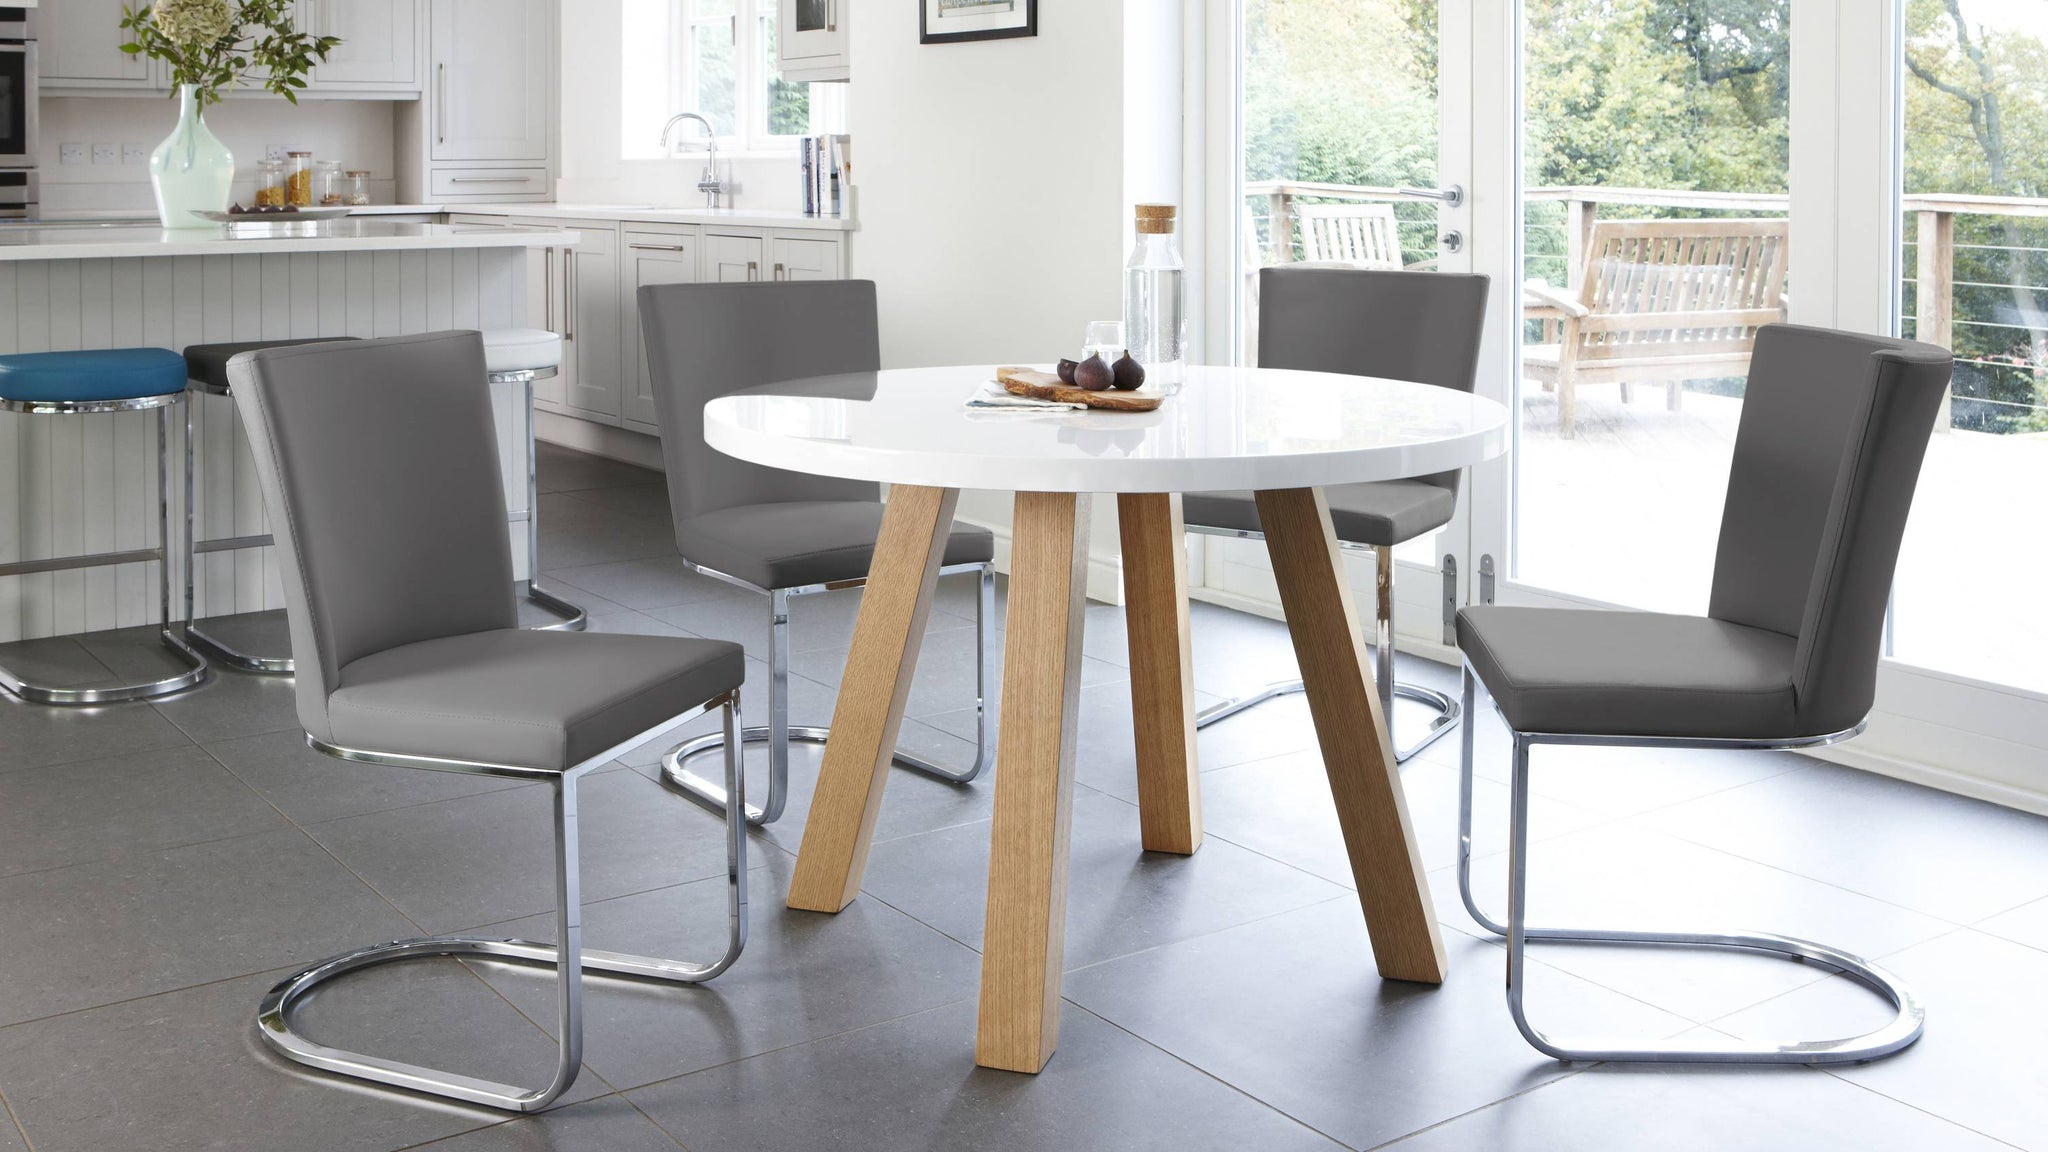 Modern four seater white gloss dining table with oak legs